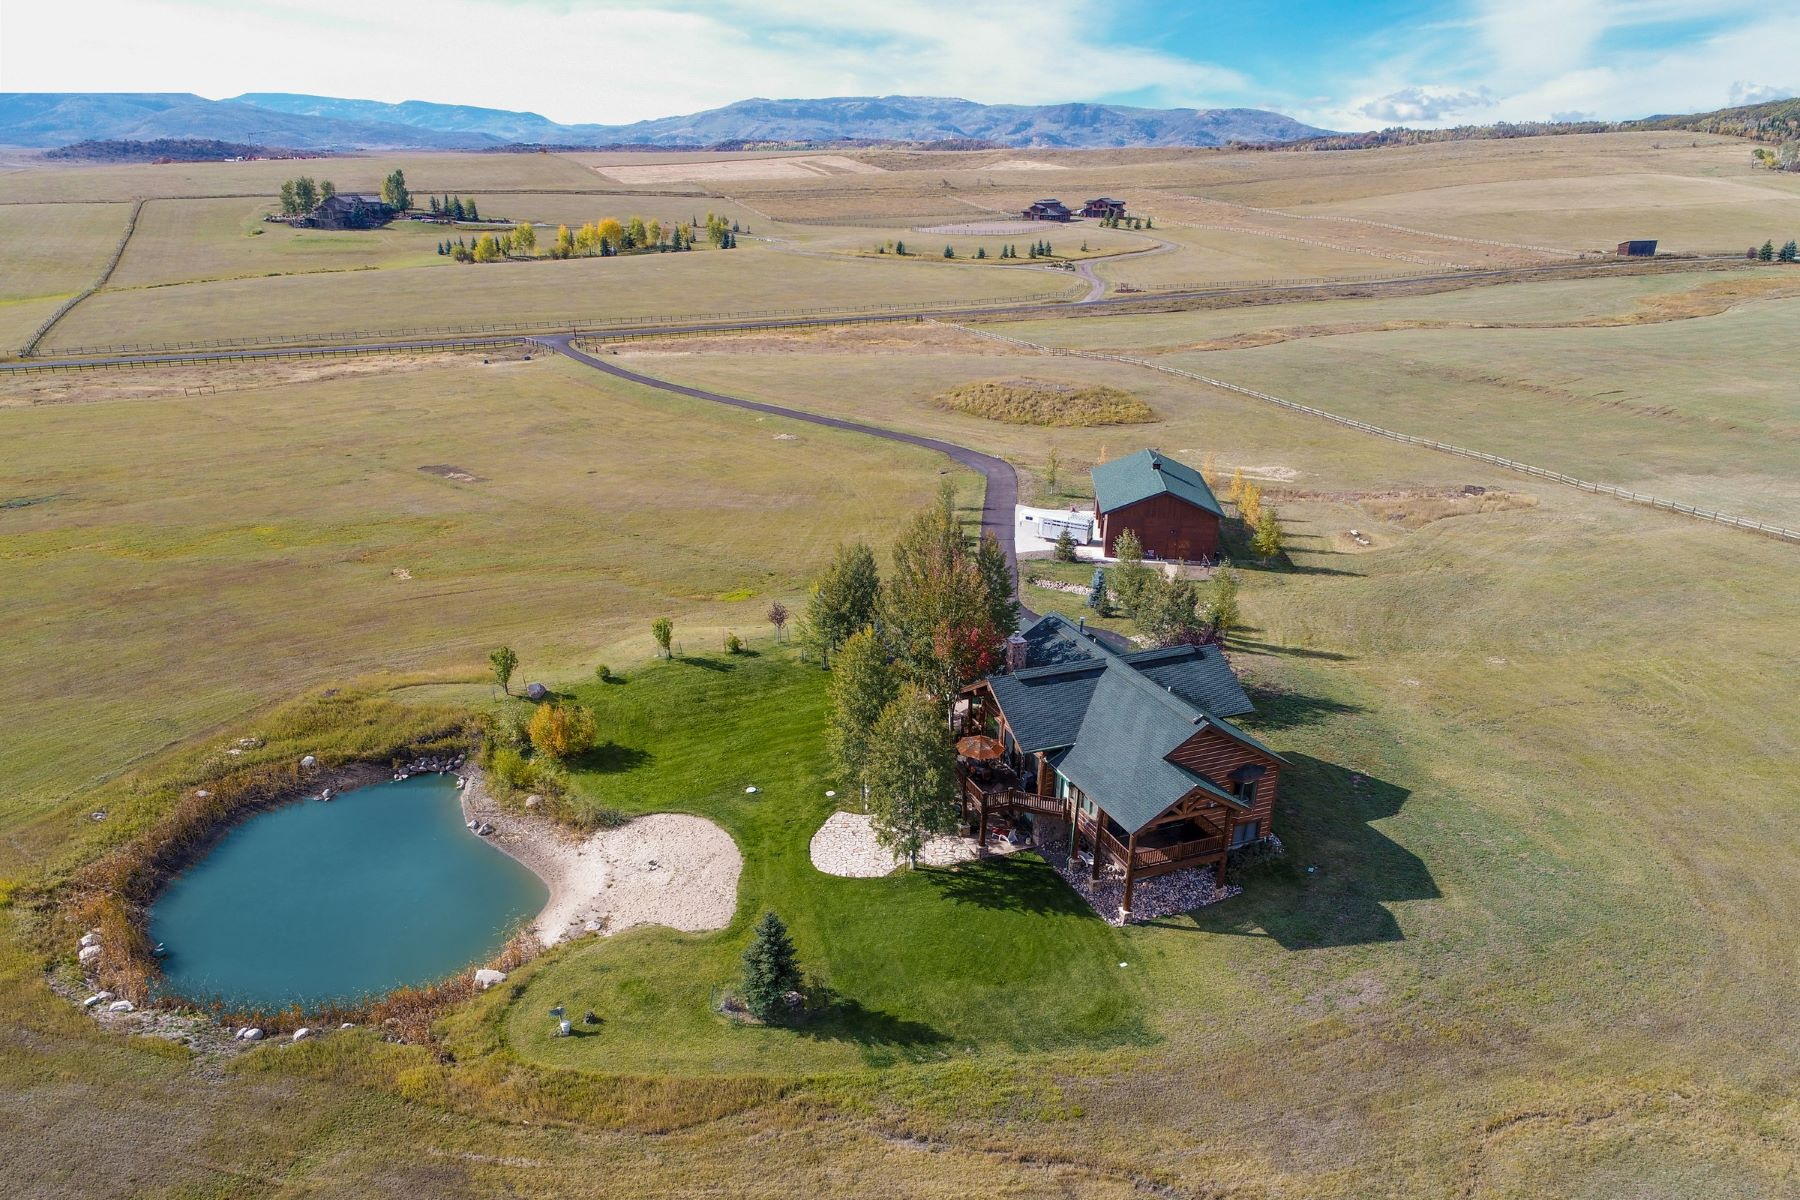 Single Family Home for Sale at Emerald Meadows Home with Stunning Views 33355 Emerald Meadows Drive Steamboat Springs, Colorado 80477 United States